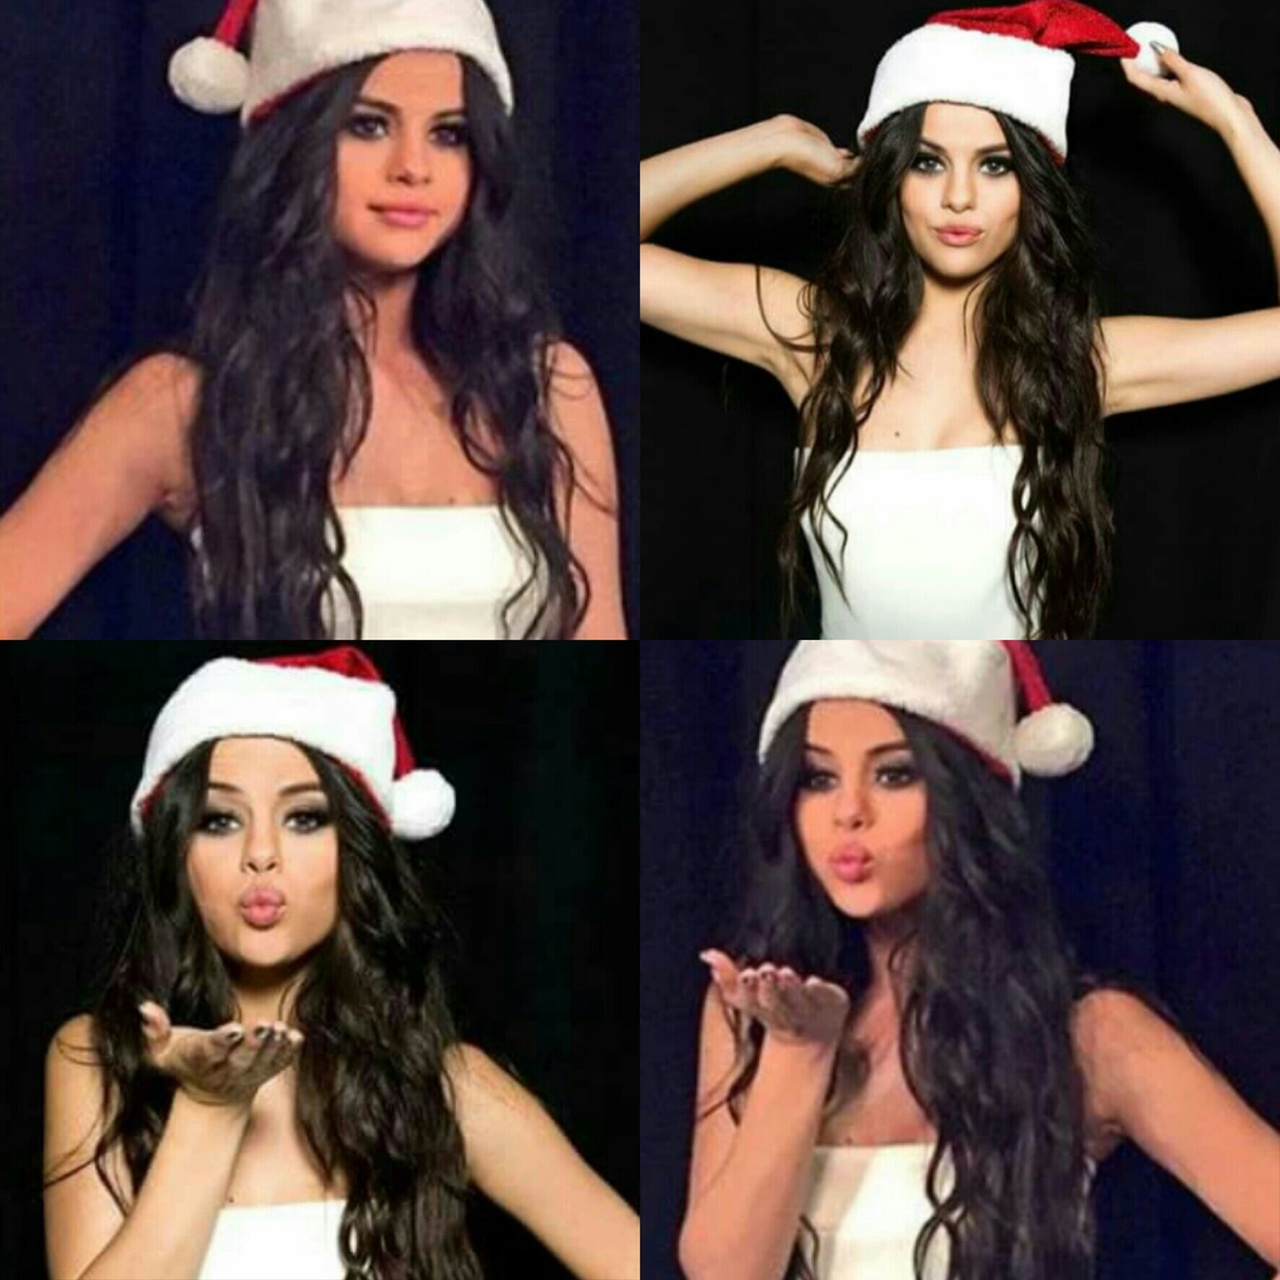 adorable, biebs, black, black hair, blo, brown, celebrity, christmas, collage, cute, cutie, december, disney, eyes, famous, filter, hat, hot, idol, justin bieber, kiss, presents, santa clause, selena gomez, stockings, white, wizards of waverly place